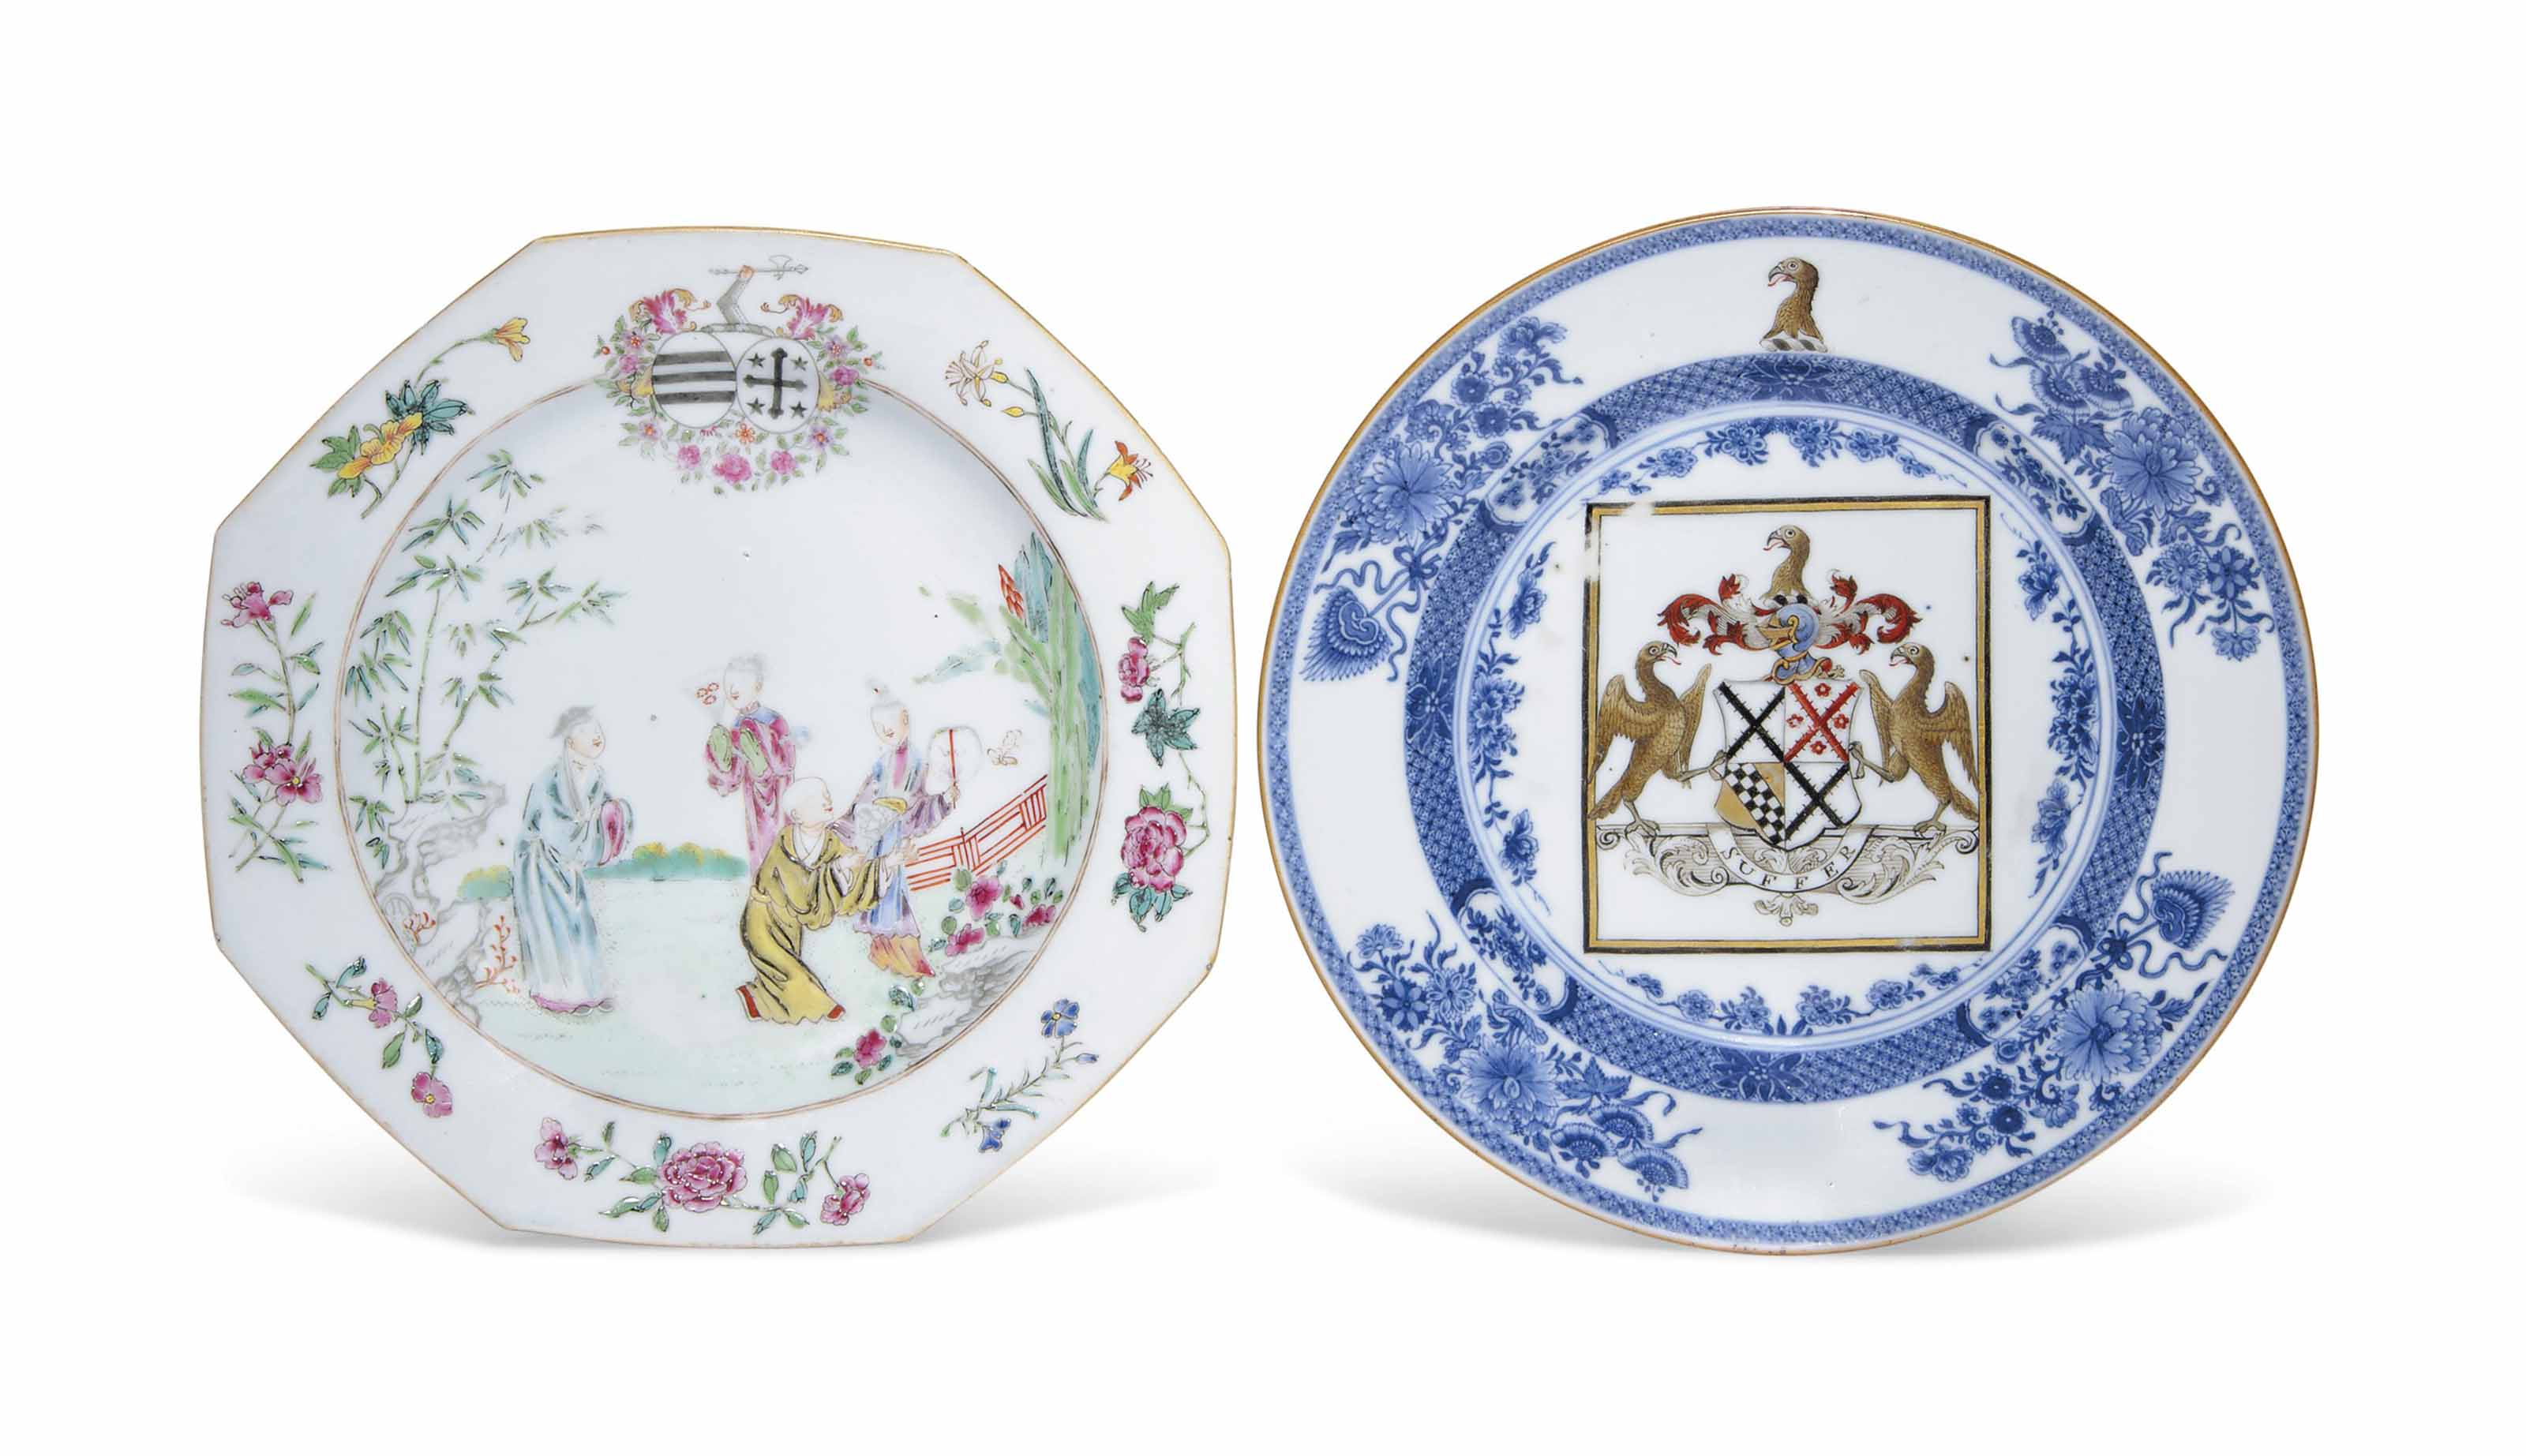 A FAMILLE ROSE ARMORAL PLATE AND A BLUE AND WHITE AND ENAMEL ARMORIAL DEEP PLATE